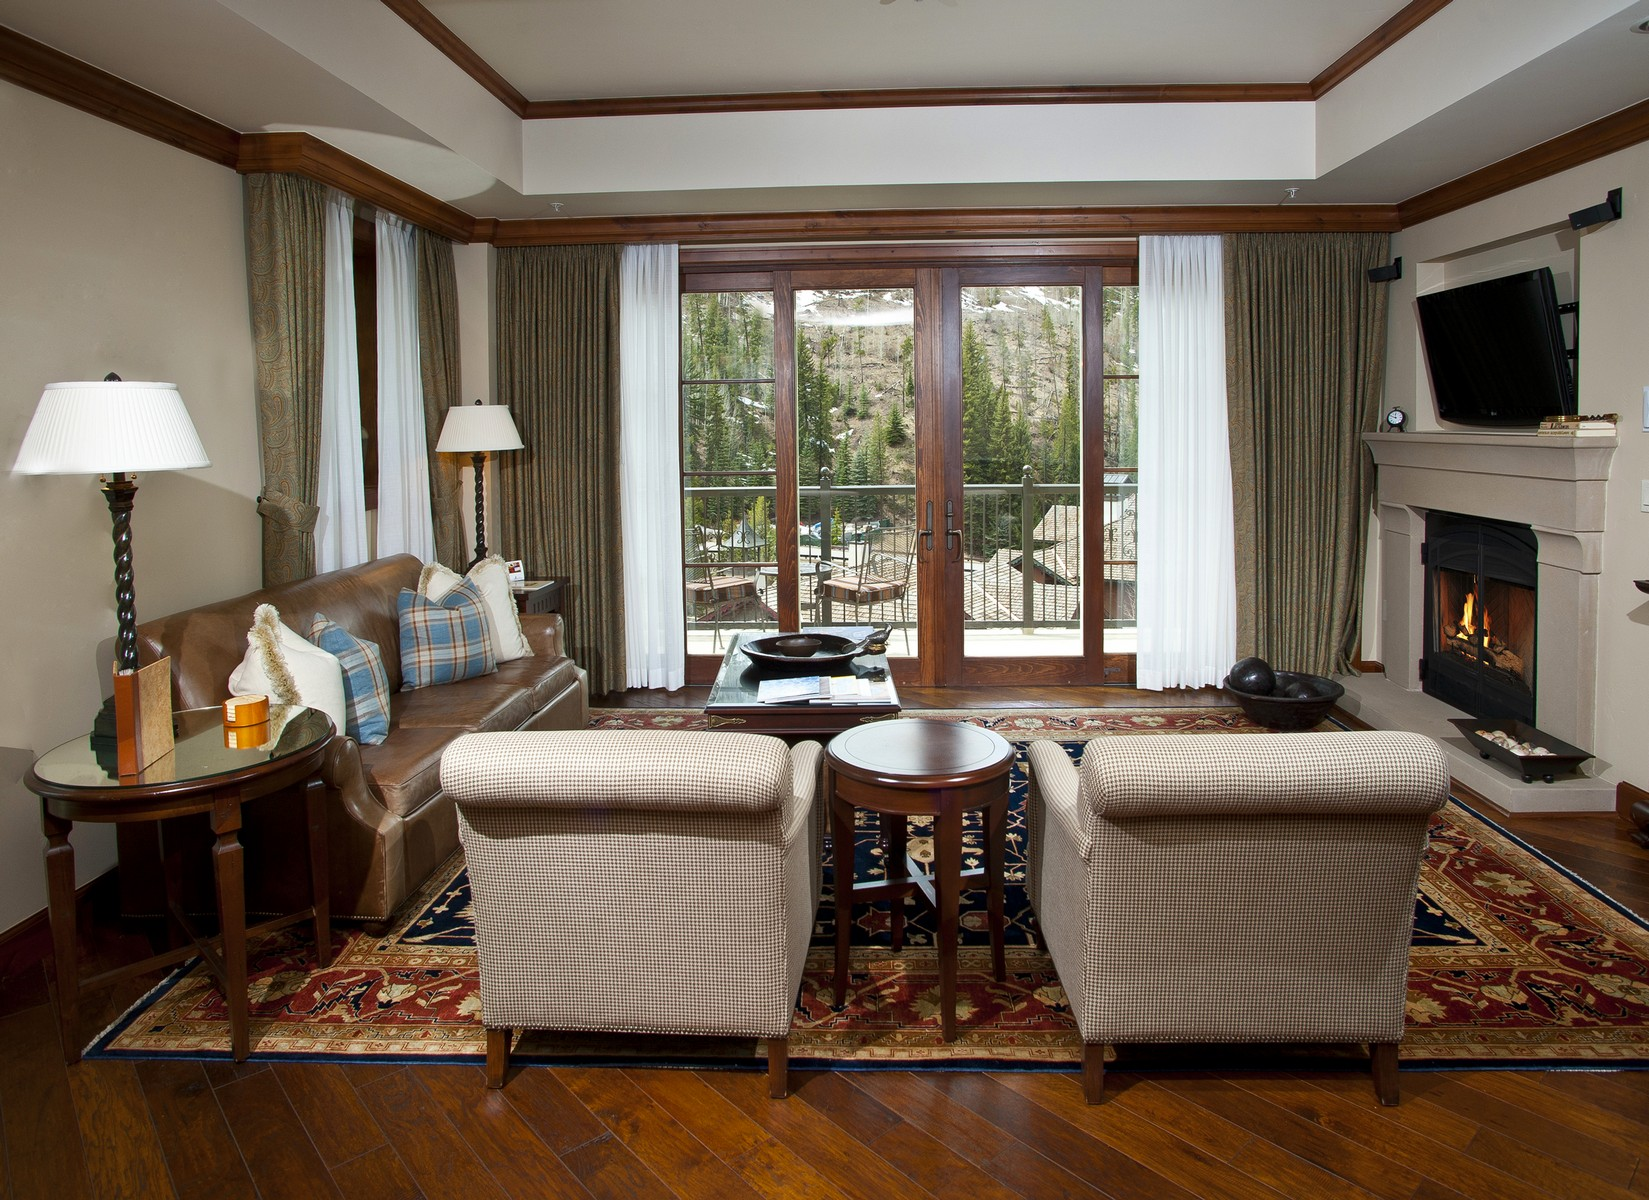 Fractional Ownership for Sale at Ritz Carlton Club and Residences 728 W Lionshead Cir #429 Lionshead, Vail, Colorado, 81657 United States